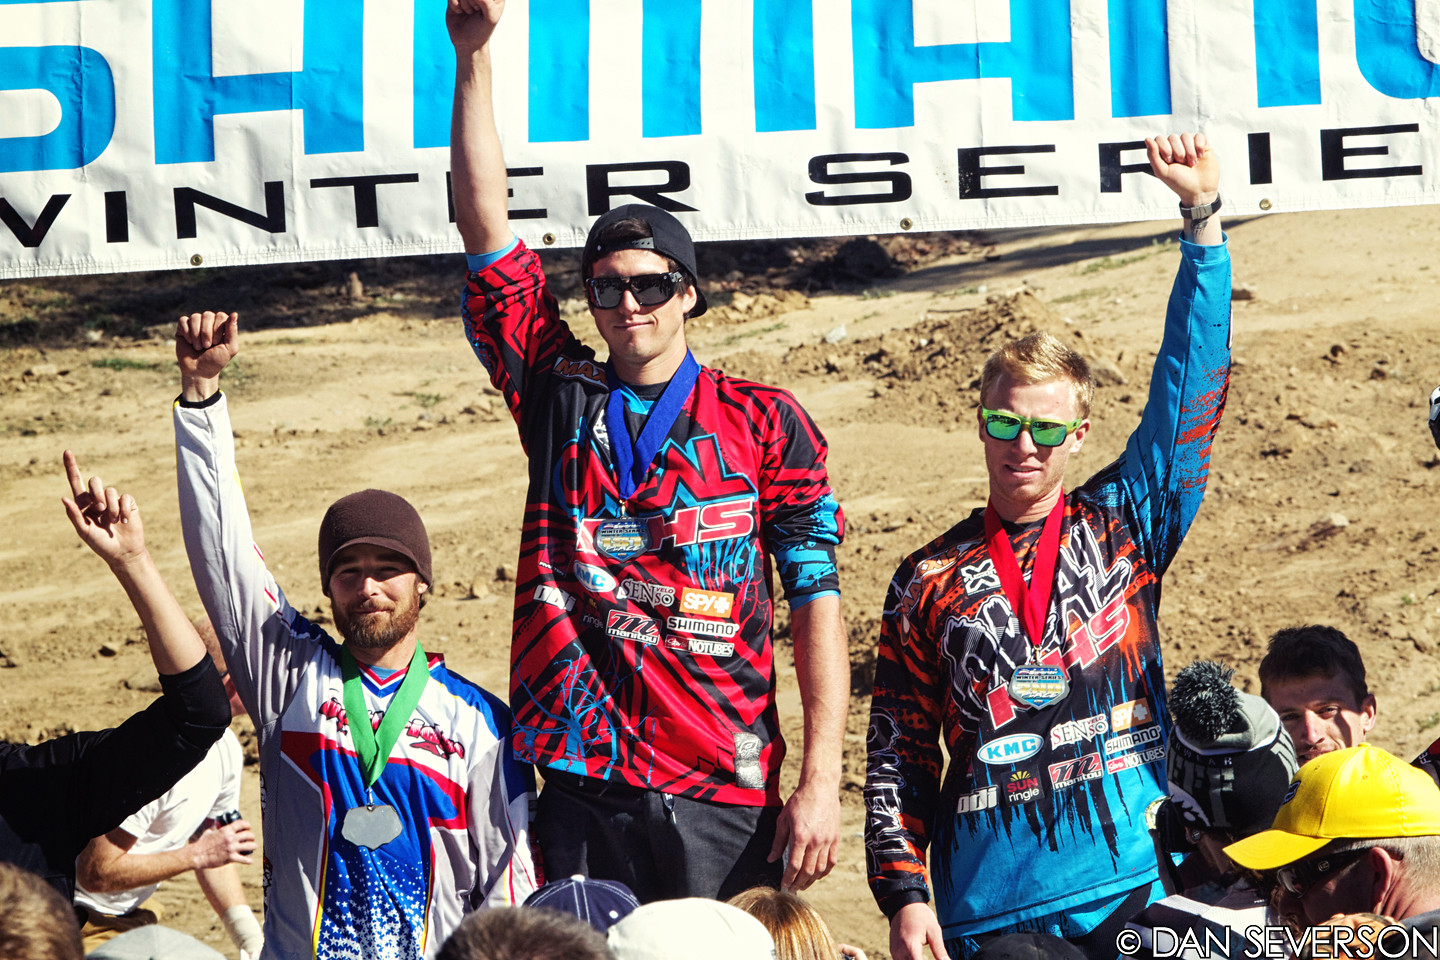 Pro Men's Podium at Fontana #4 - danseverson photo - Mountain Biking Pictures - Vital MTB